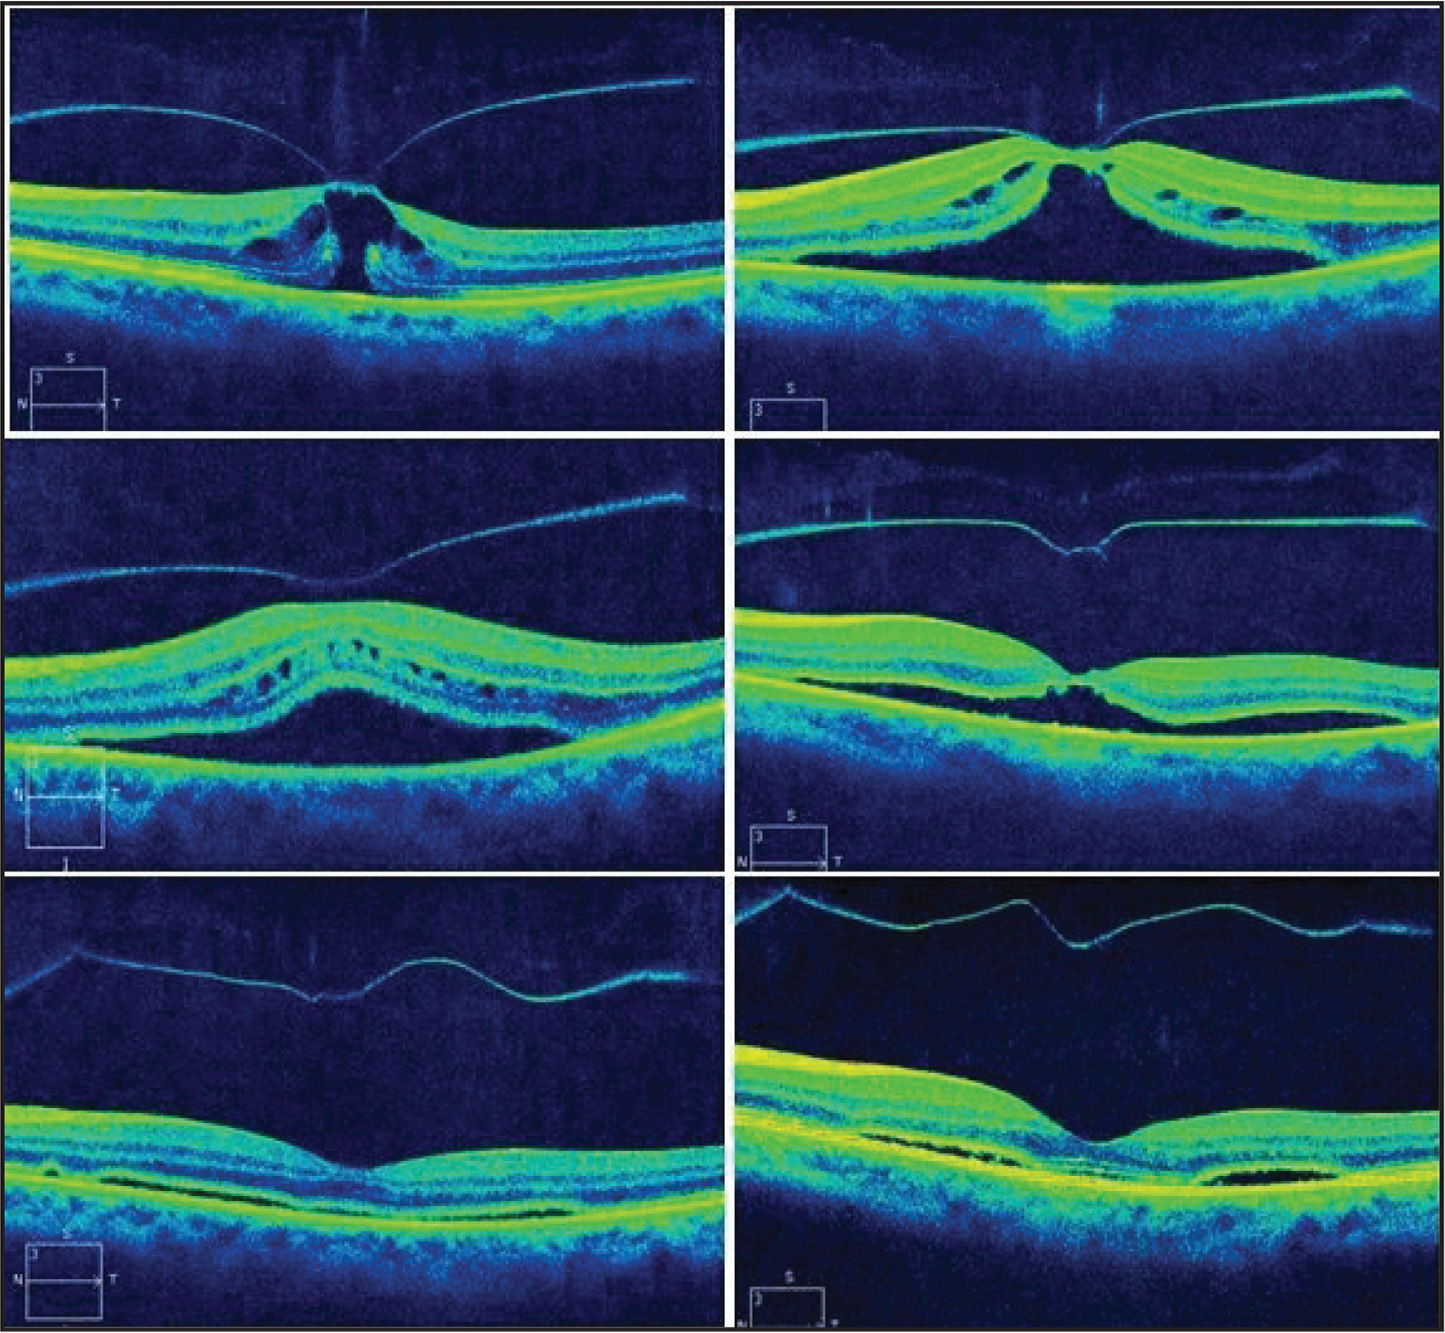 Patient 20. Fifty-eight-year-old phakic woman with intraretinal cysts and impending macular hole (top left). Continued vitreomacular traction with serous macular detachment 4 days after treatment (top right). Vitreomacular traction persisted at day 7 (middle left) but had released by day 14 (middle right). Thin subretinal fluid persisted 8 weeks after treatment (bottom left). After 5 months, the central macula has reattached but paracentral subretinal fluid persists (bottom right).